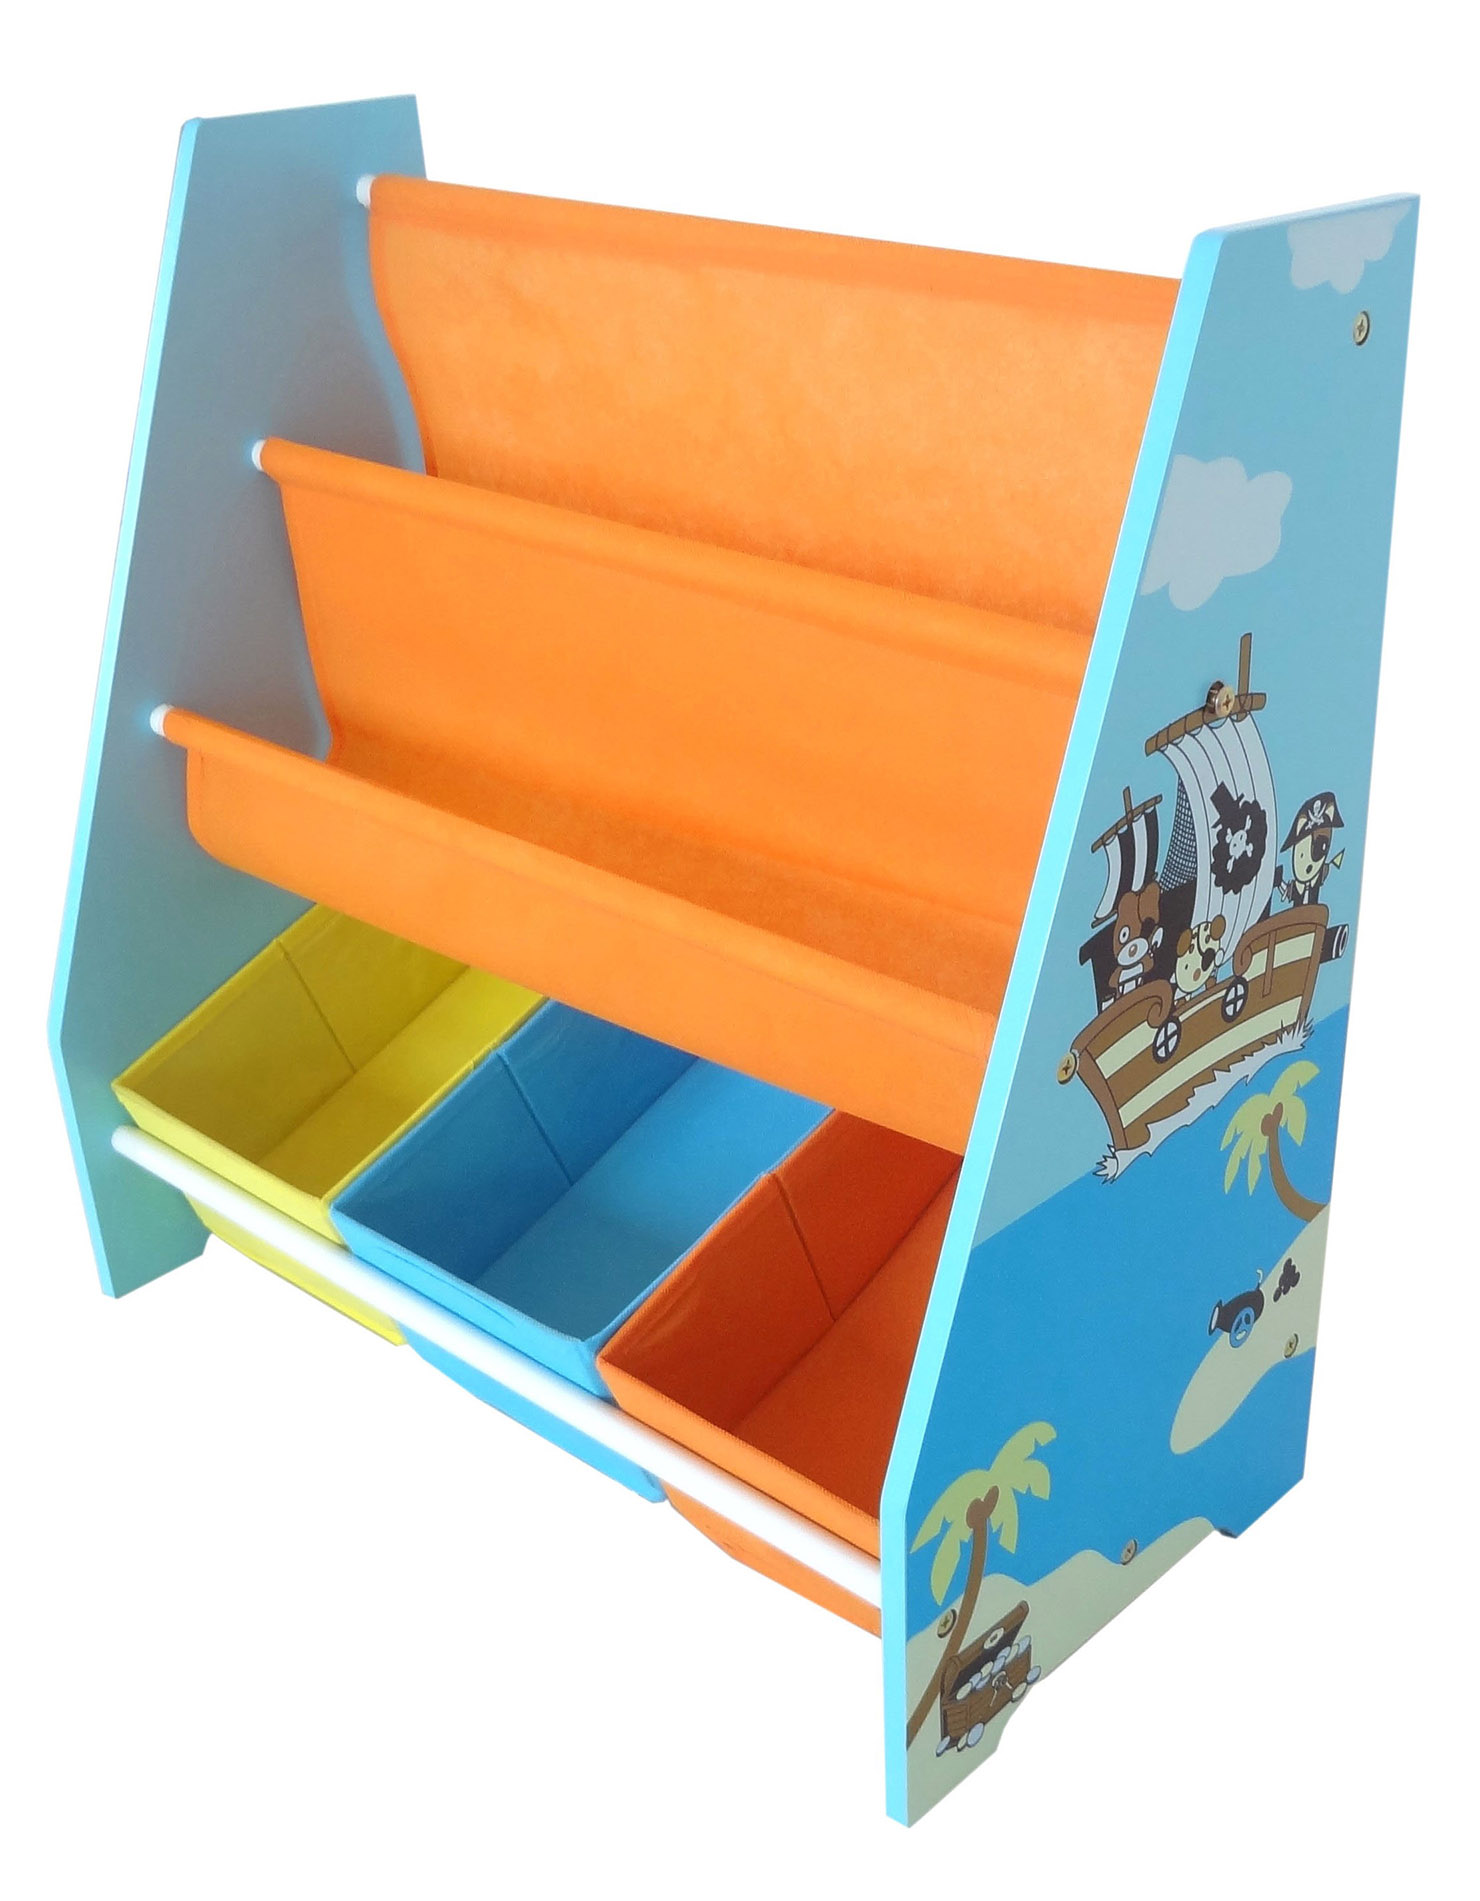 Kiddi Style Pirate Themed Sling Bookshelf And Storage Blue Kiddy Products